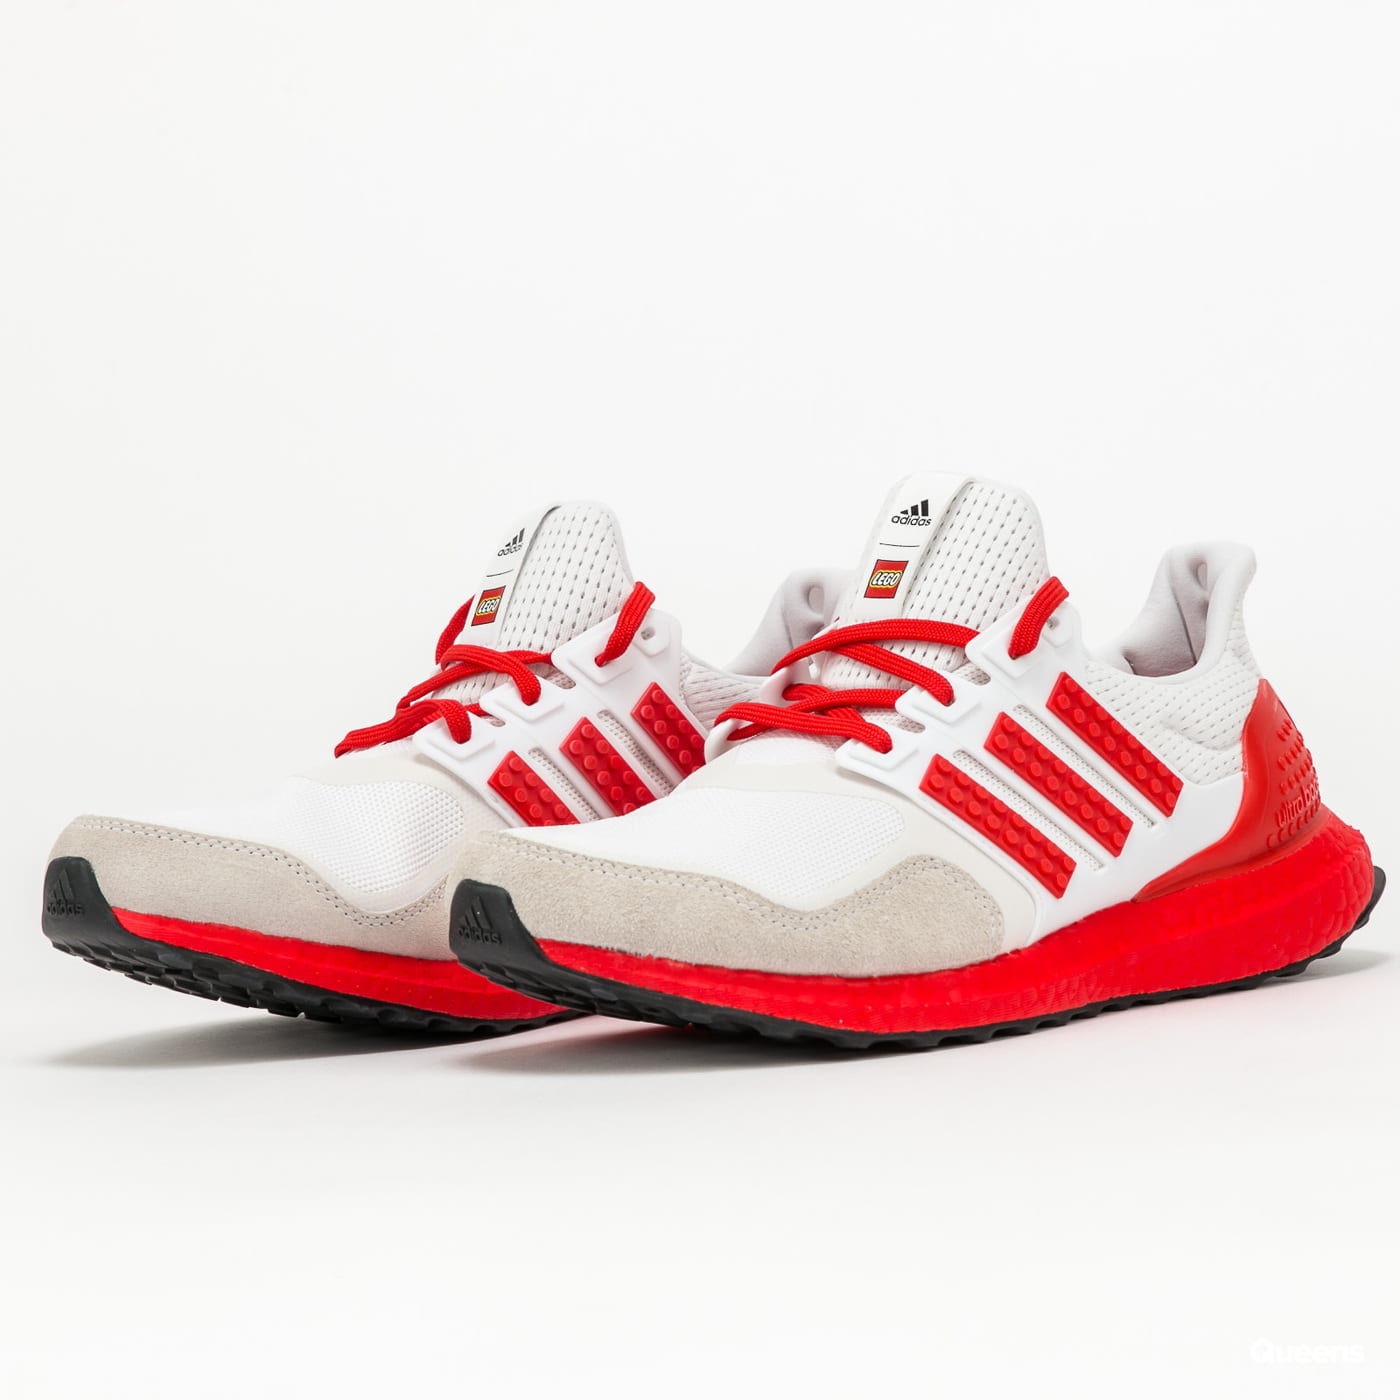 adidas Performance Ultraboost DNA X LEGO Color Pack Red ftwwht / red shoblu